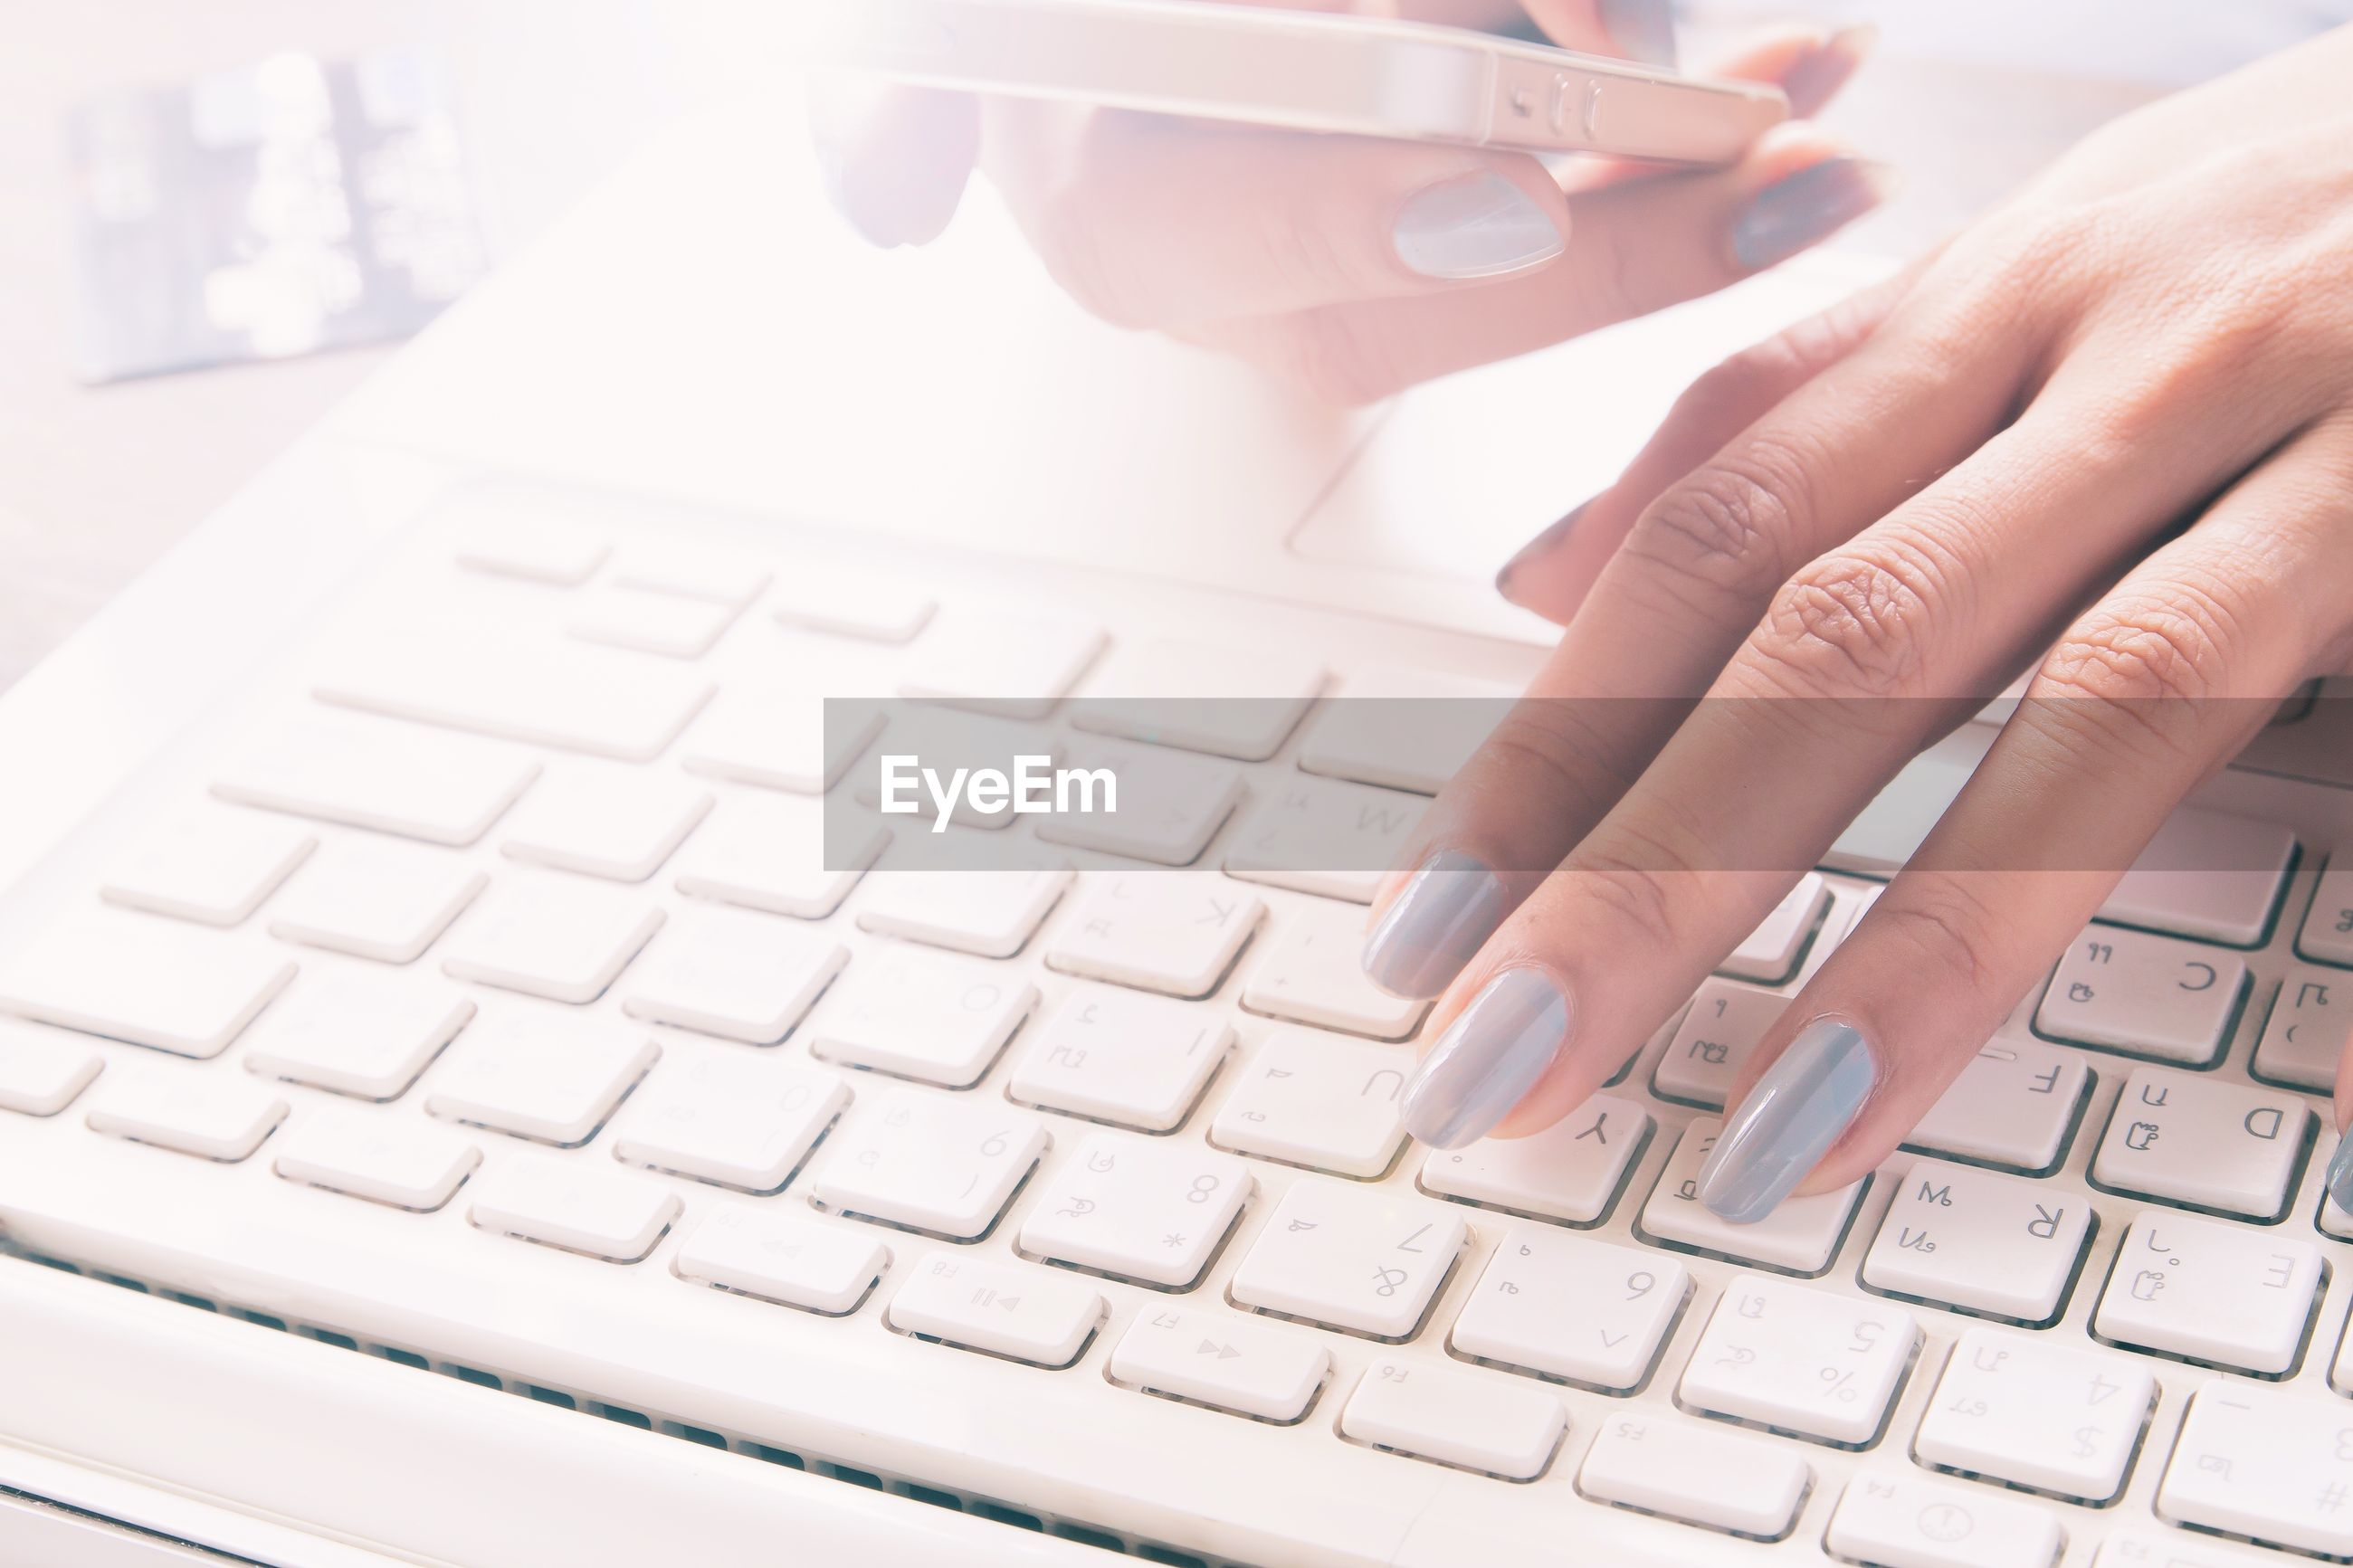 Cropped hands of woman using laptop